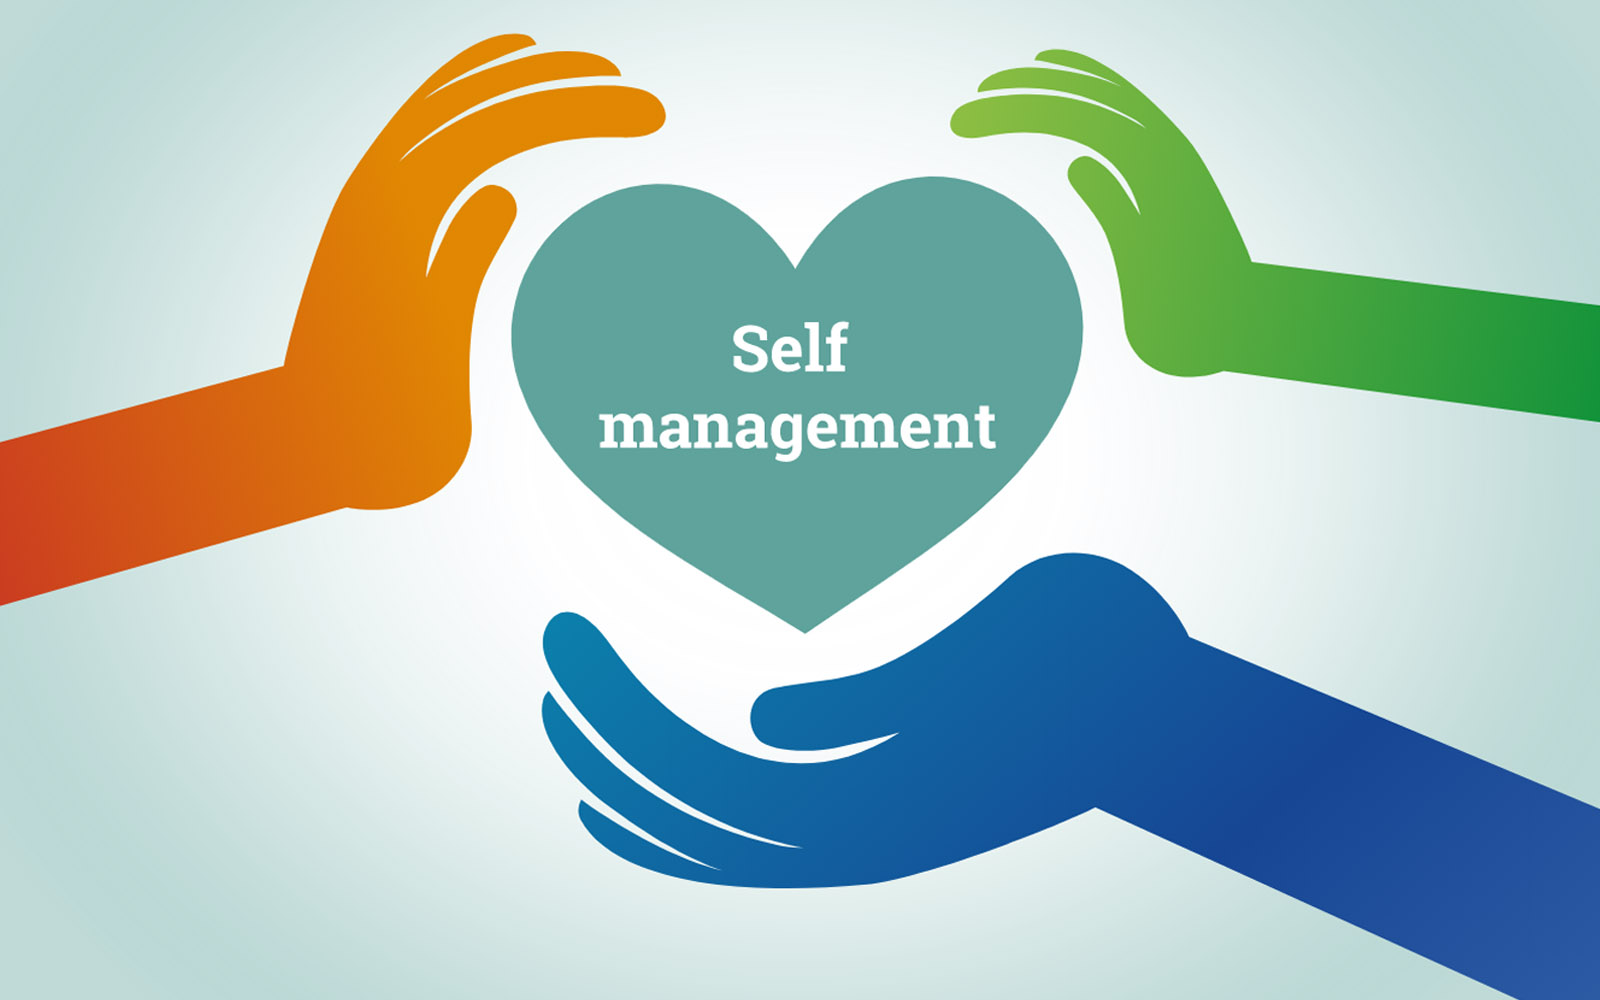 What is meant by self-management?